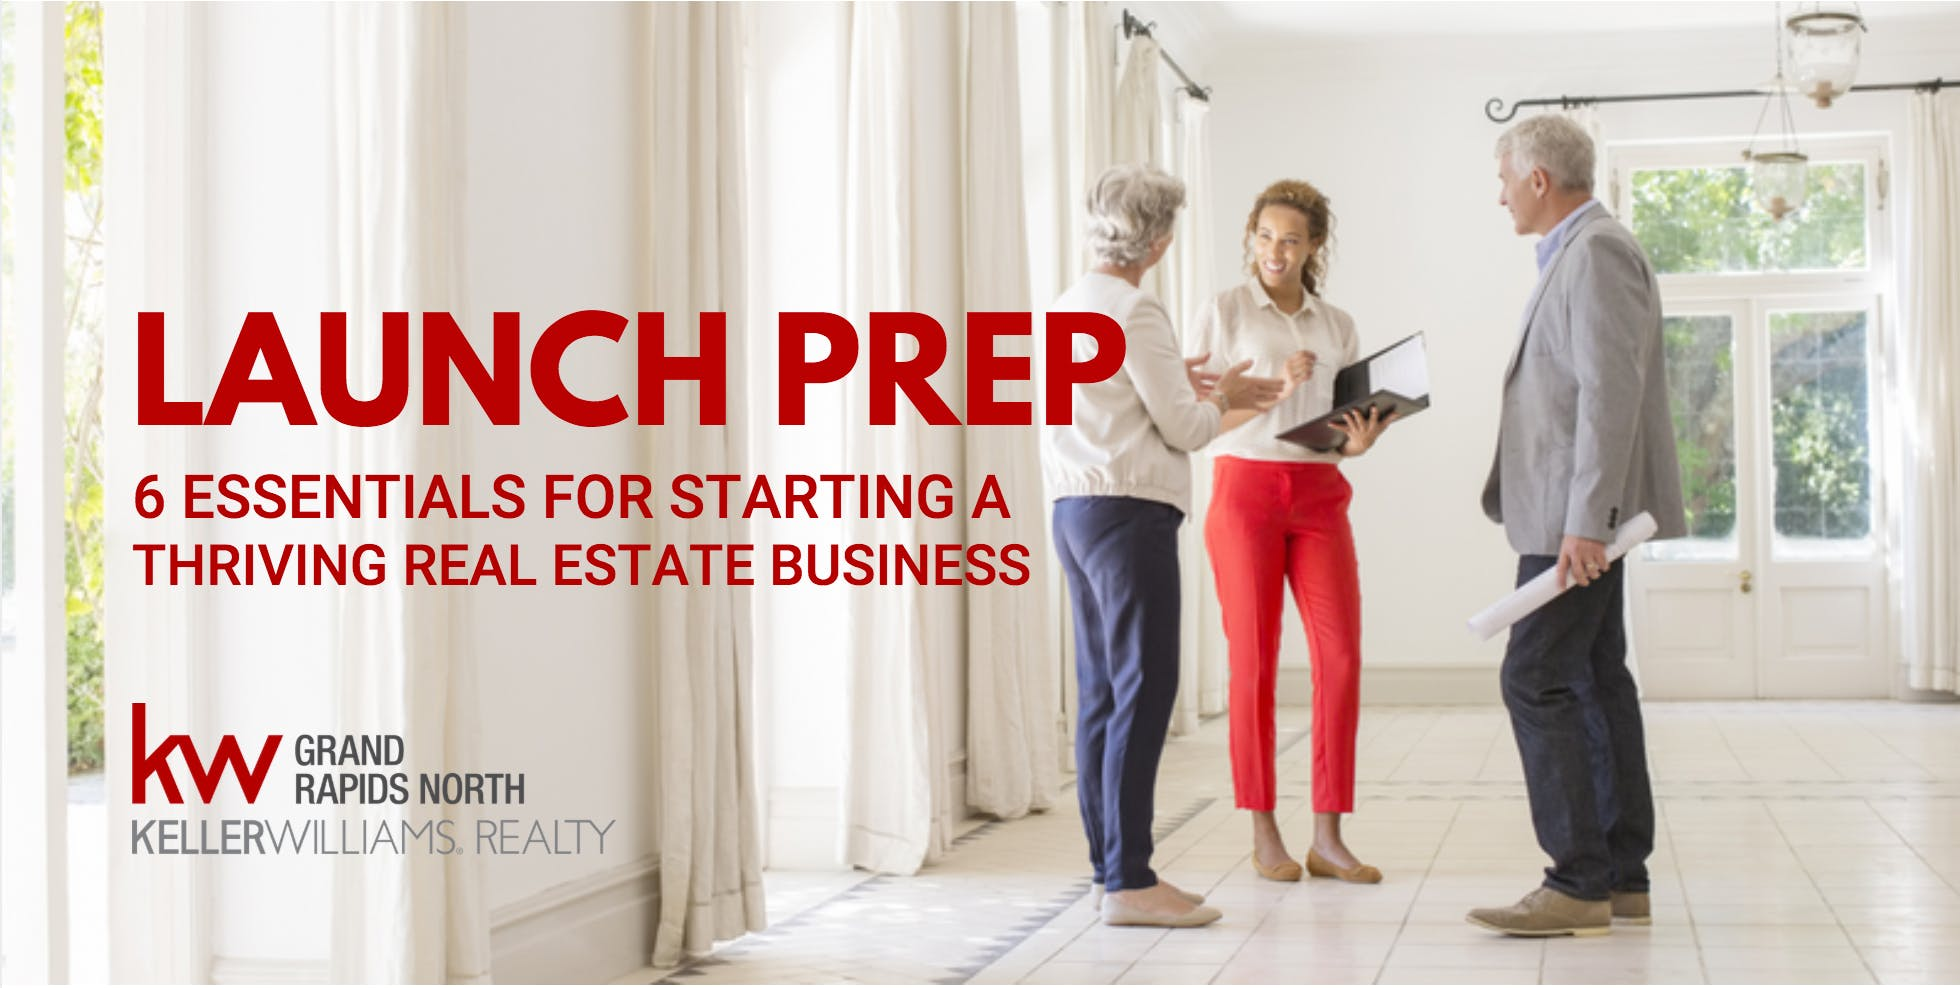 Launch Prep 6 Essentials for Starting a Thriving Real Estate Business